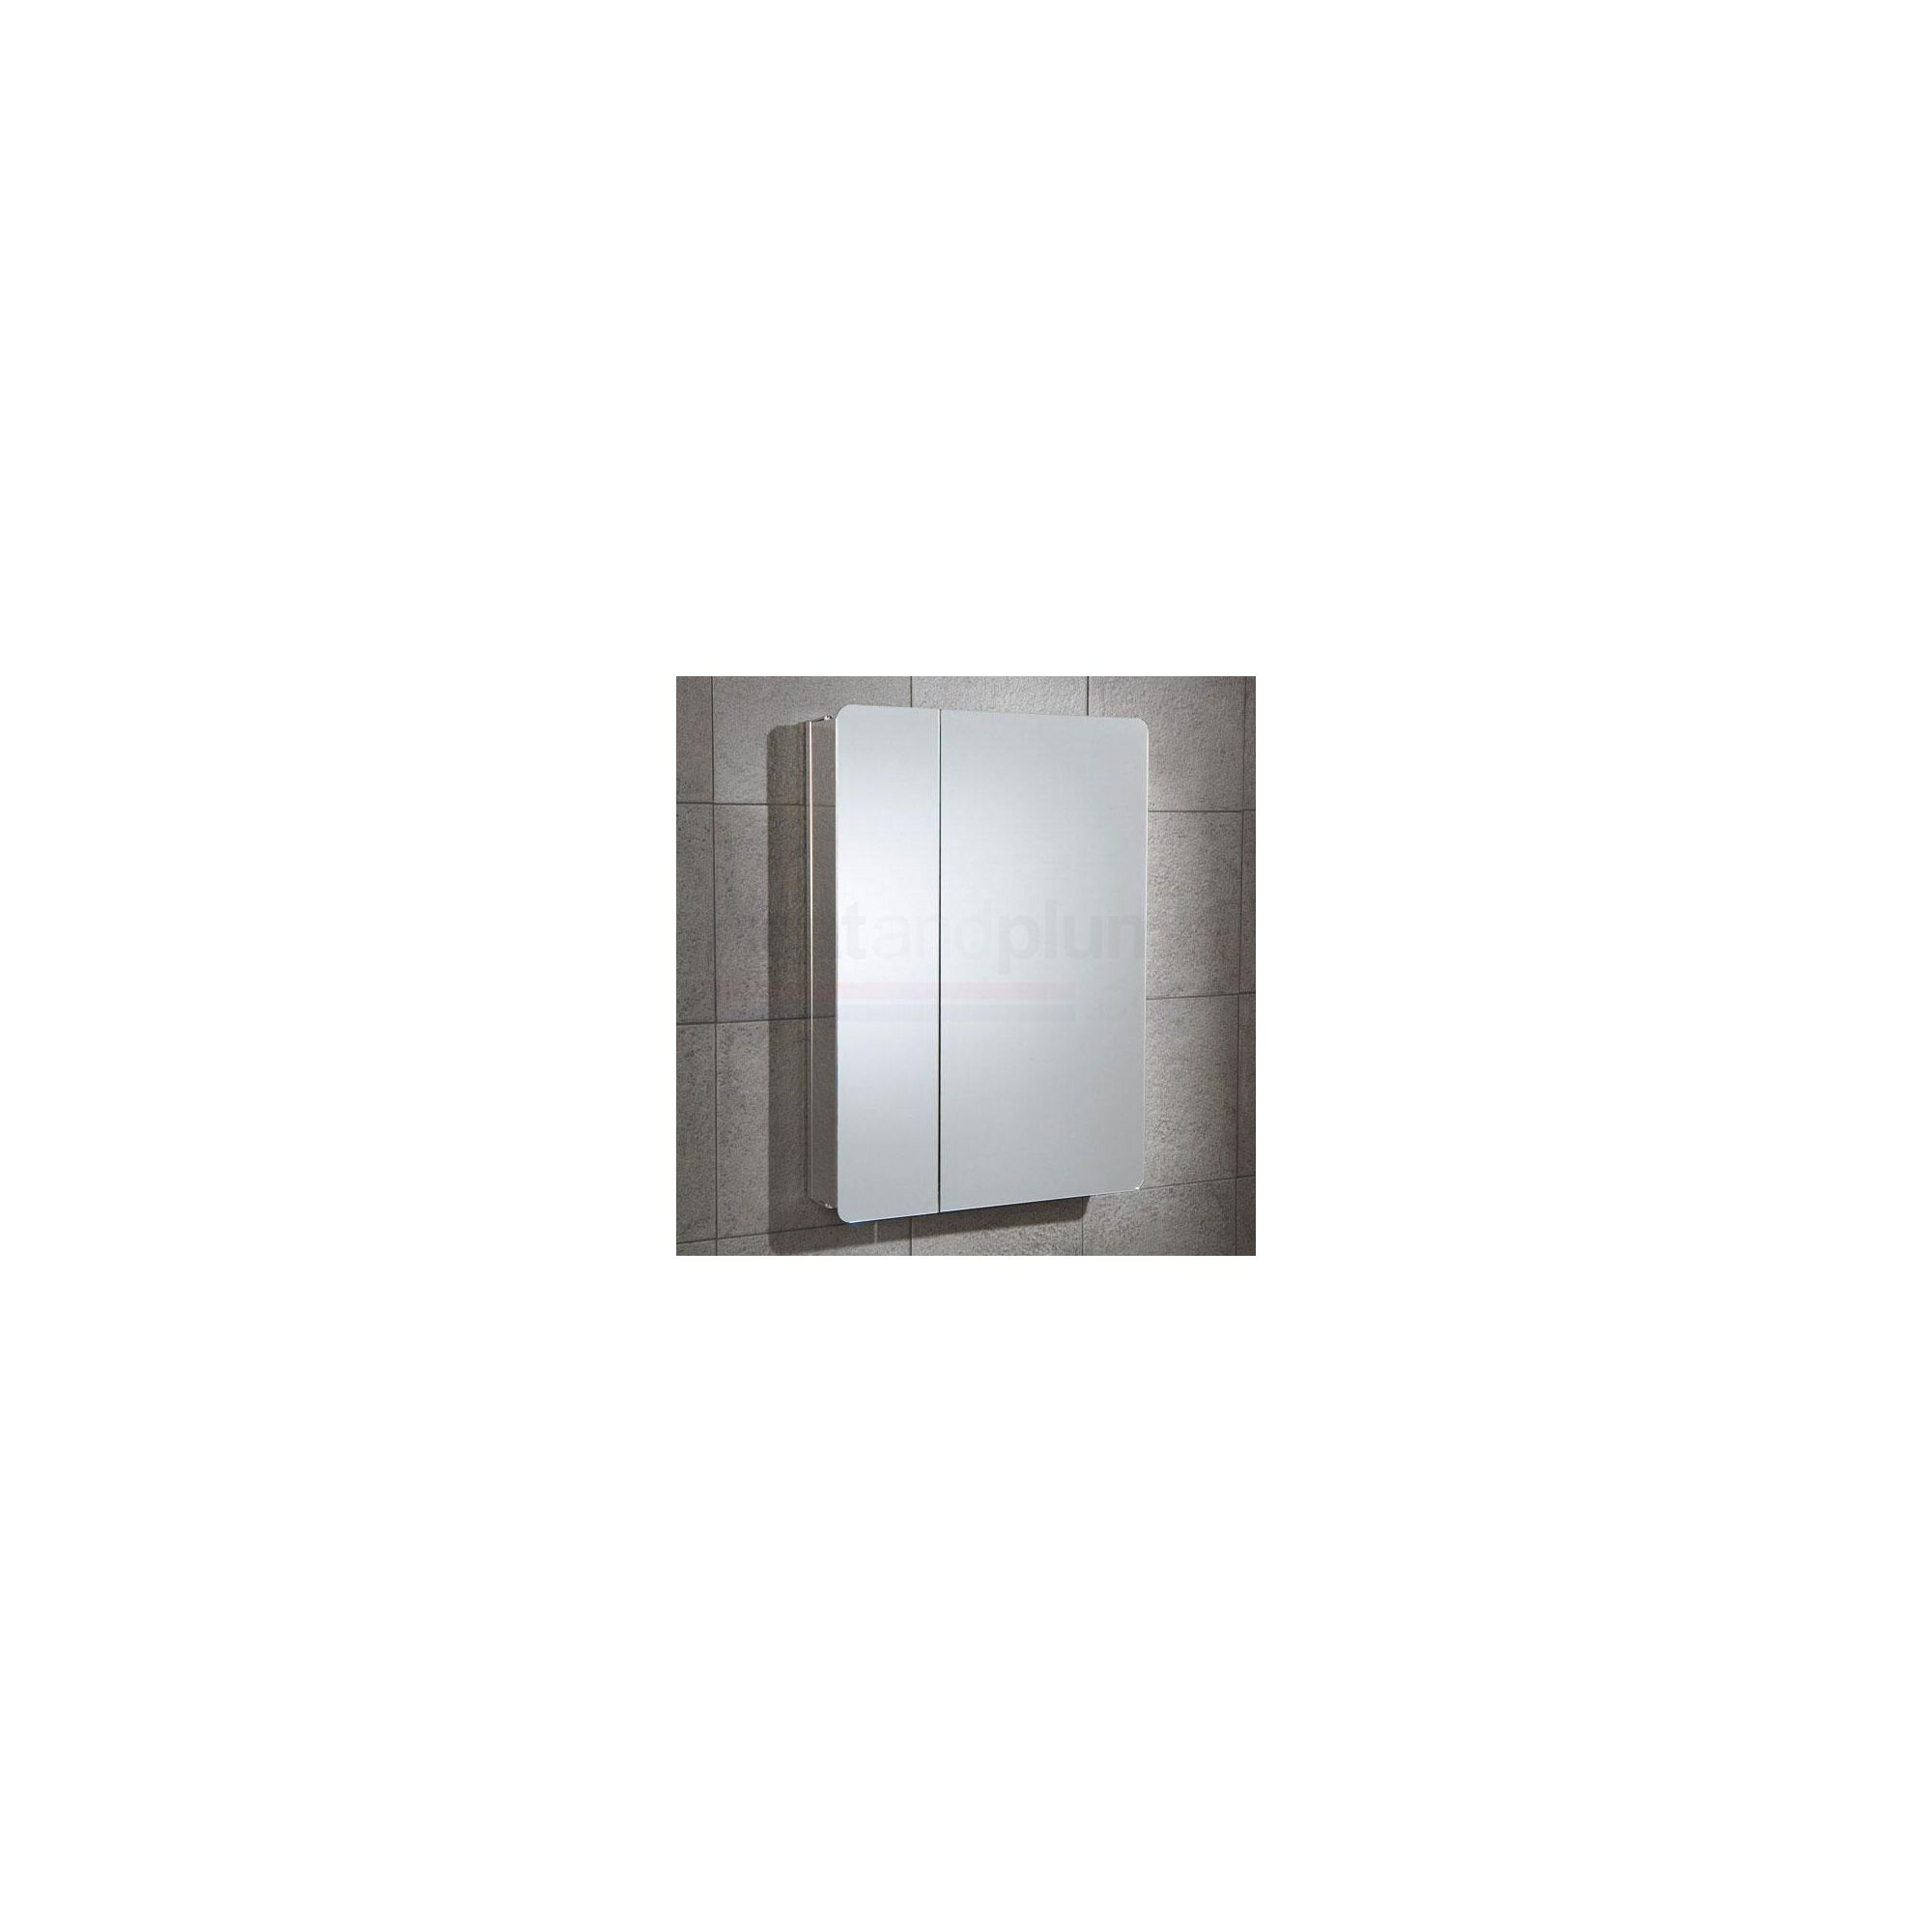 HiB Apollo Stainless Steel Bathroom Cabinet 700mm High x 500mm Wide x 105mm Deep